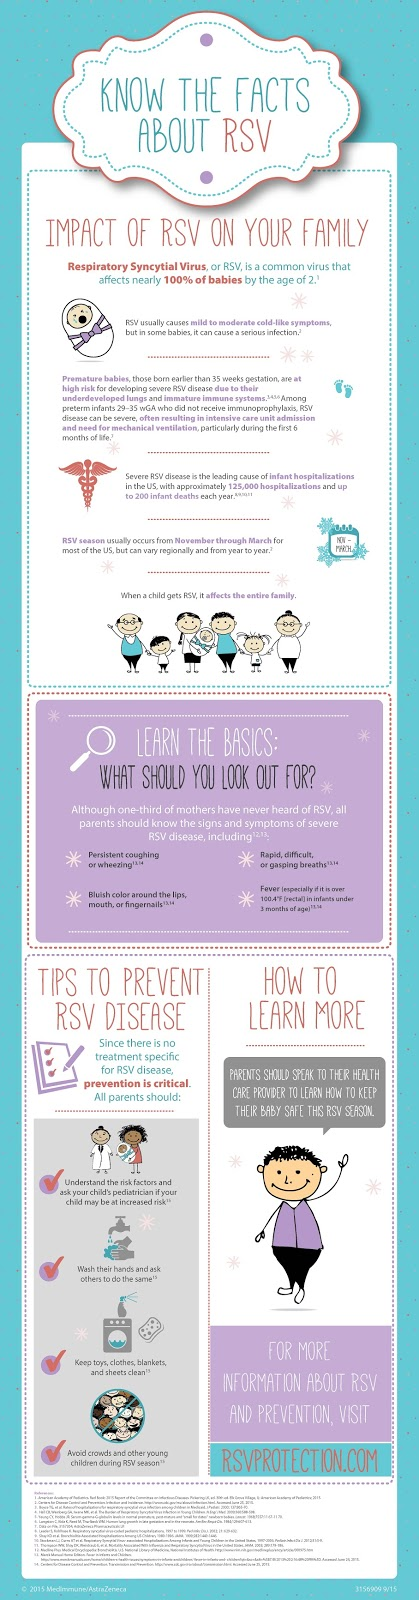 Tips to protect your premature baby from RSV. #RSVAwareness #PreemieProtection #ad